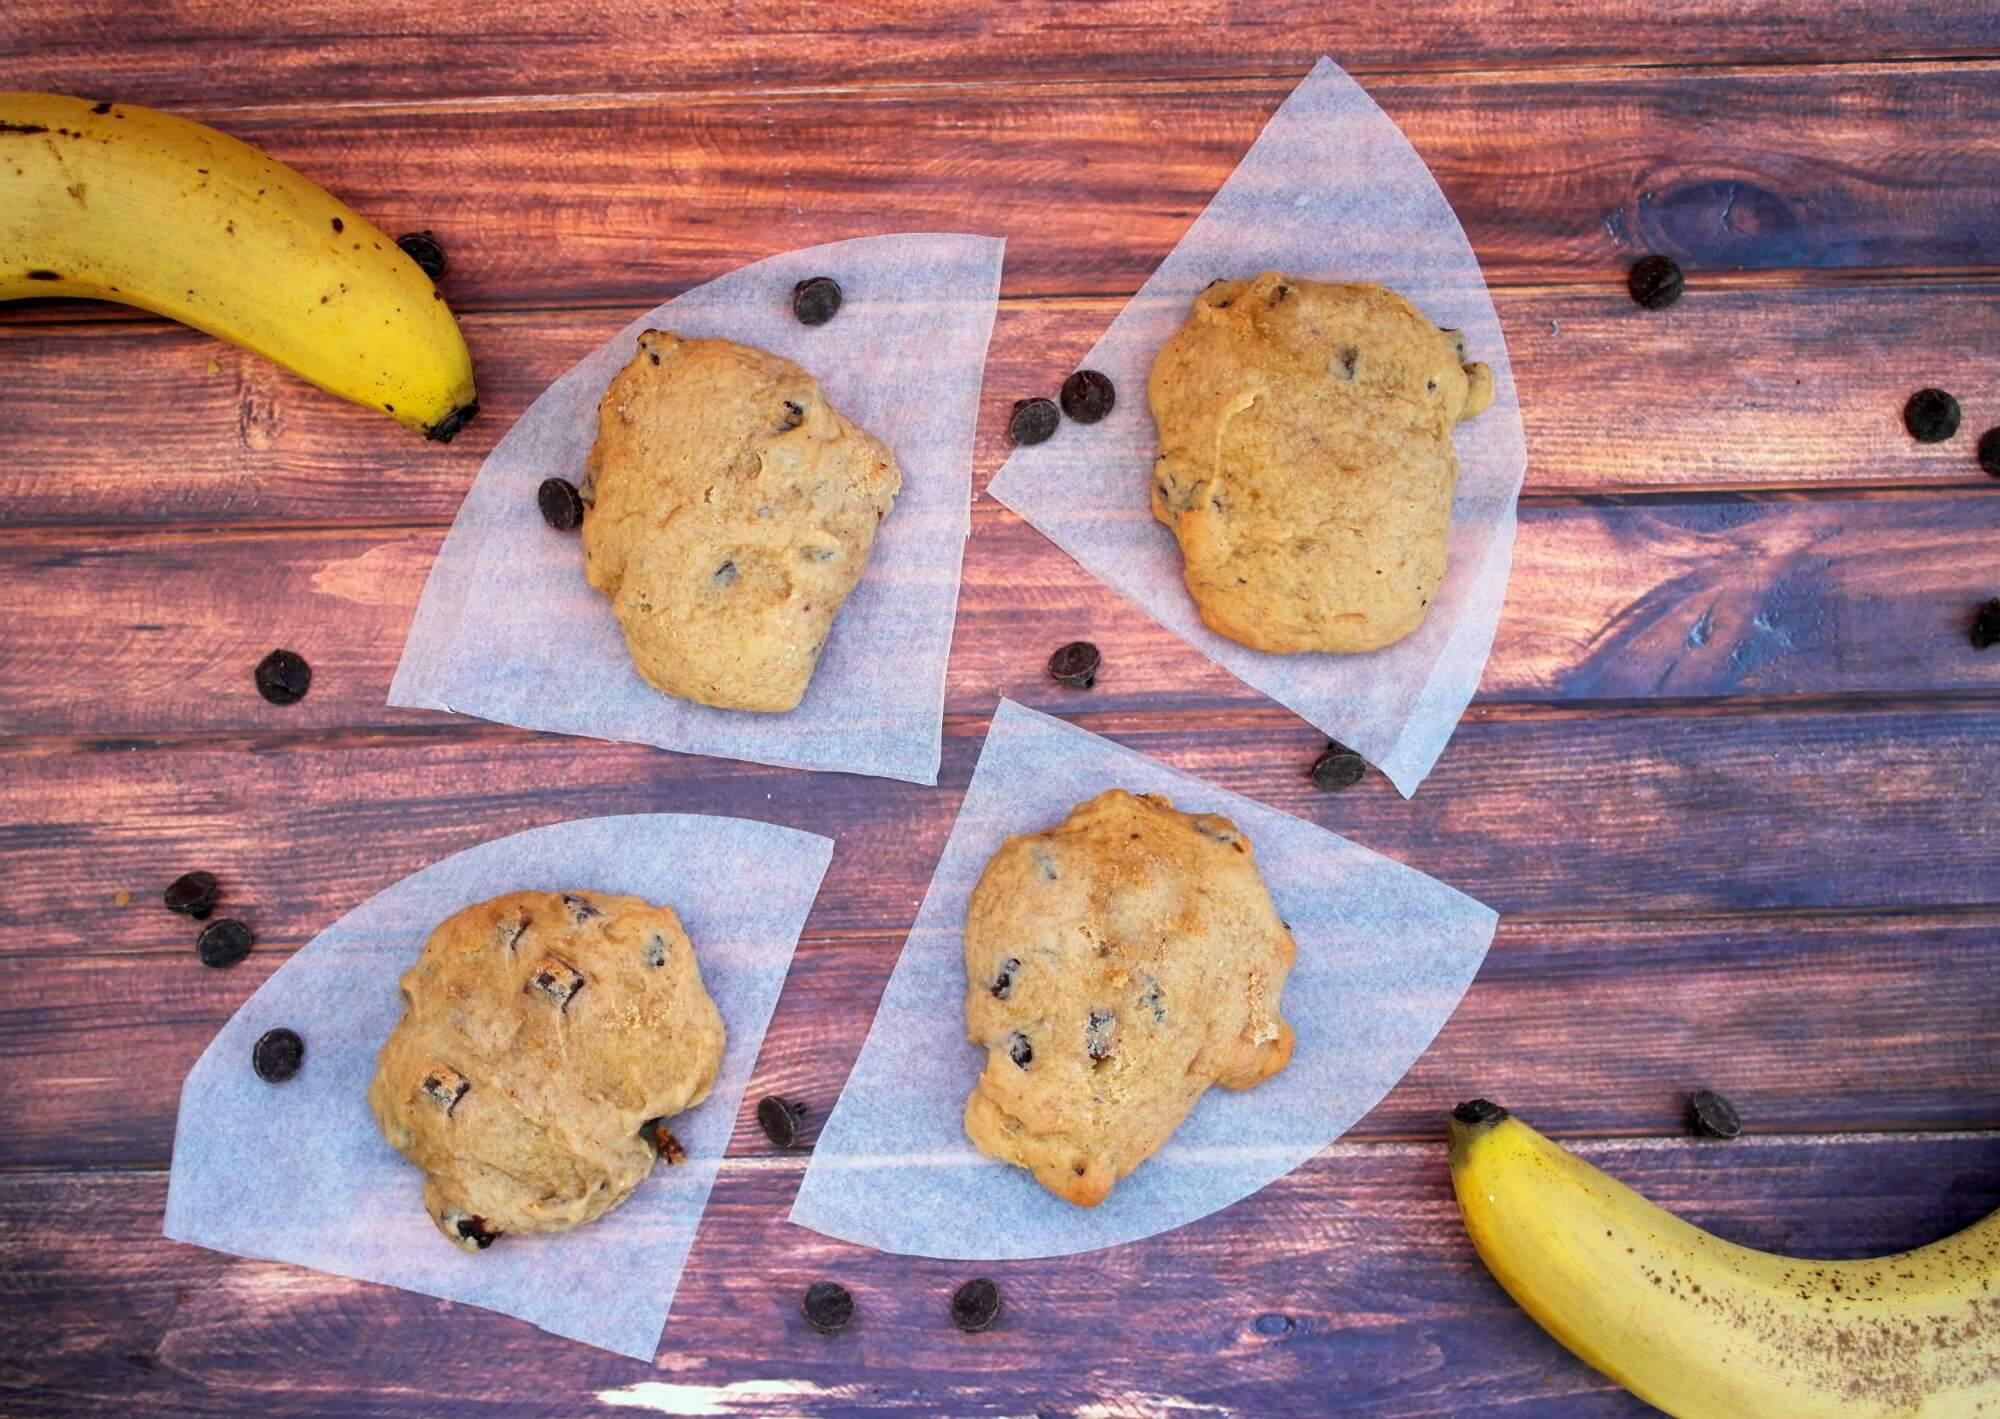 TOTS Family, Parenting, Kids, Food, Crafts, DIY and Travel banana-chip-final-horiz Low Fat Semi Homemade Banana Chip Cookies Desserts Food TOTS Family  cookies chocolate chip cookies